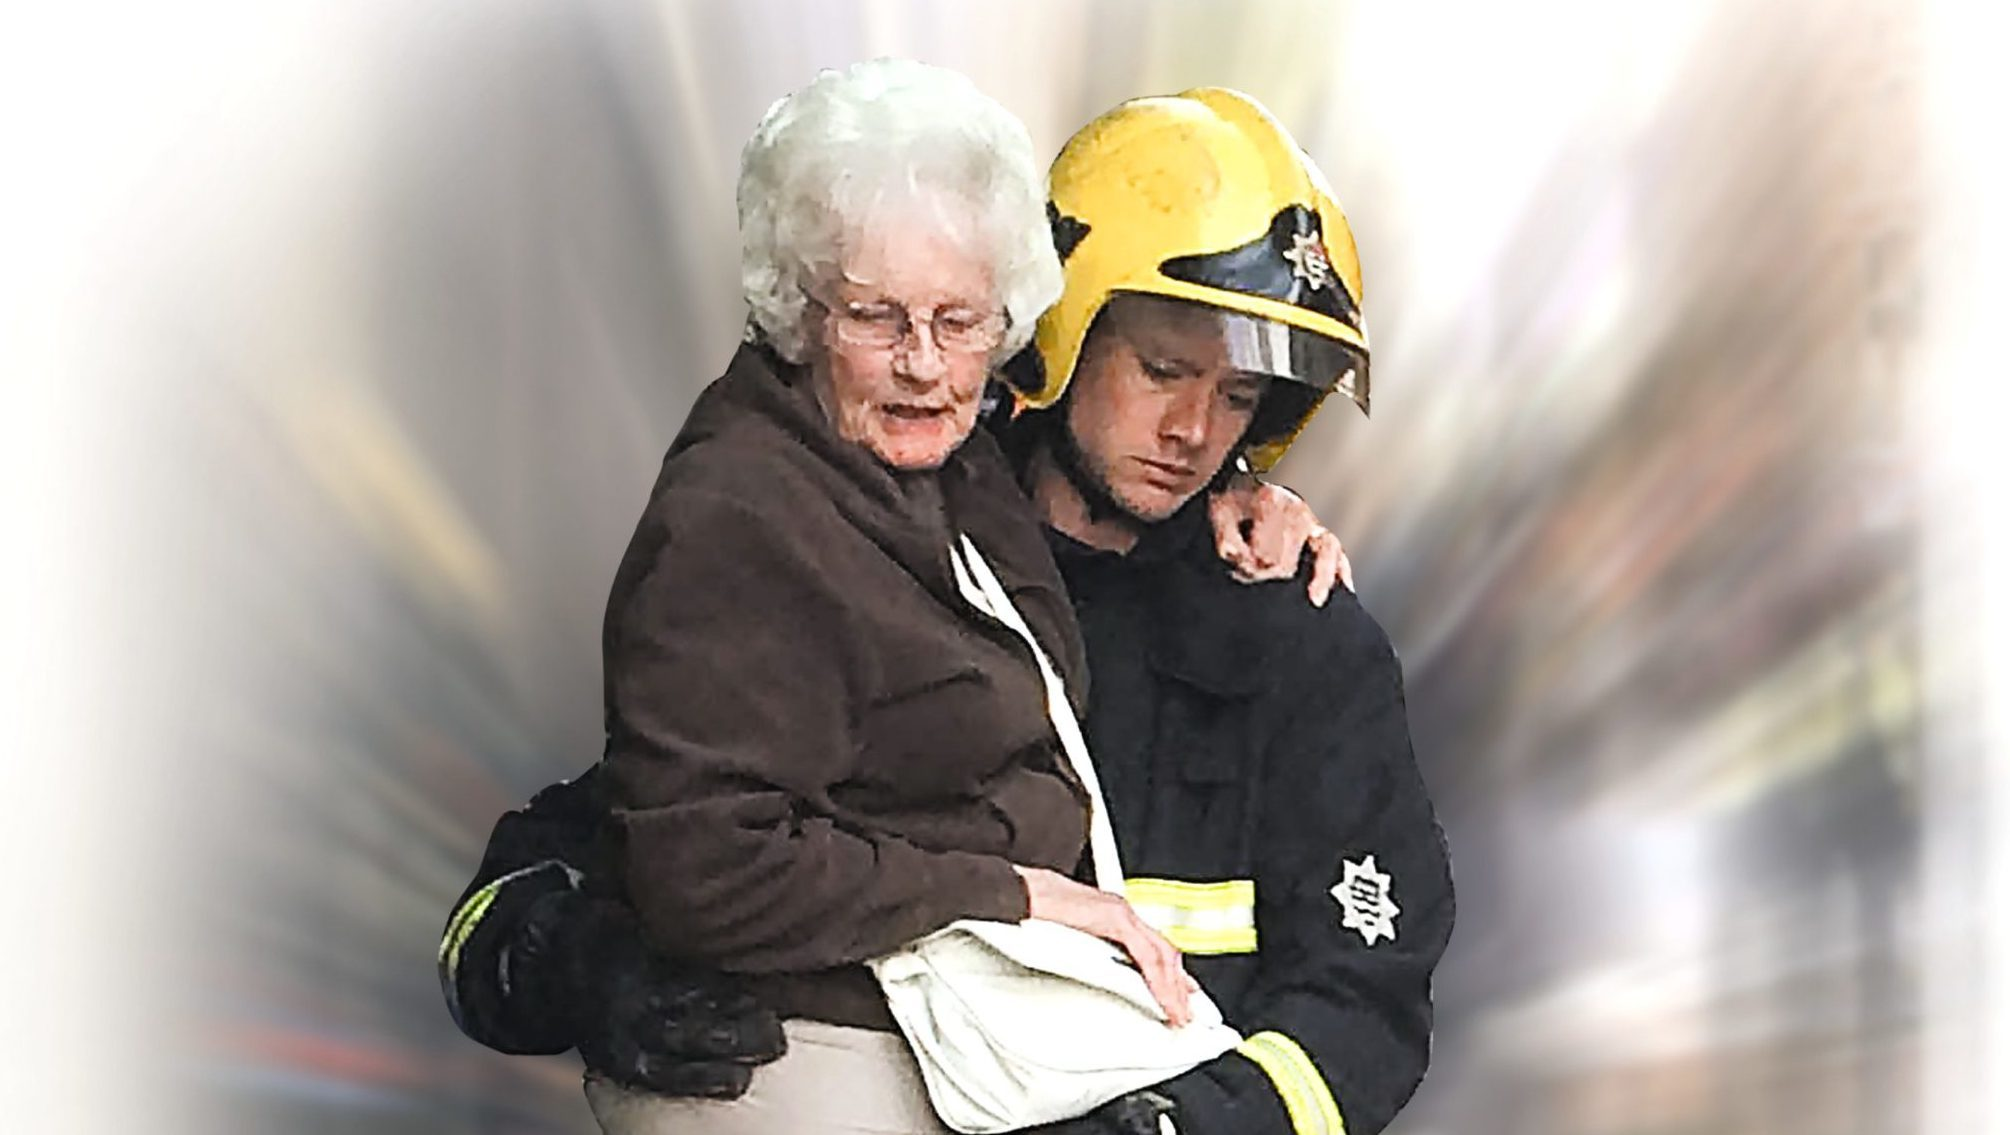 The shape of things to come? Fire officers could be helping OAPs more (Susie Stringfellow/LNP/REX/Shutterstock)